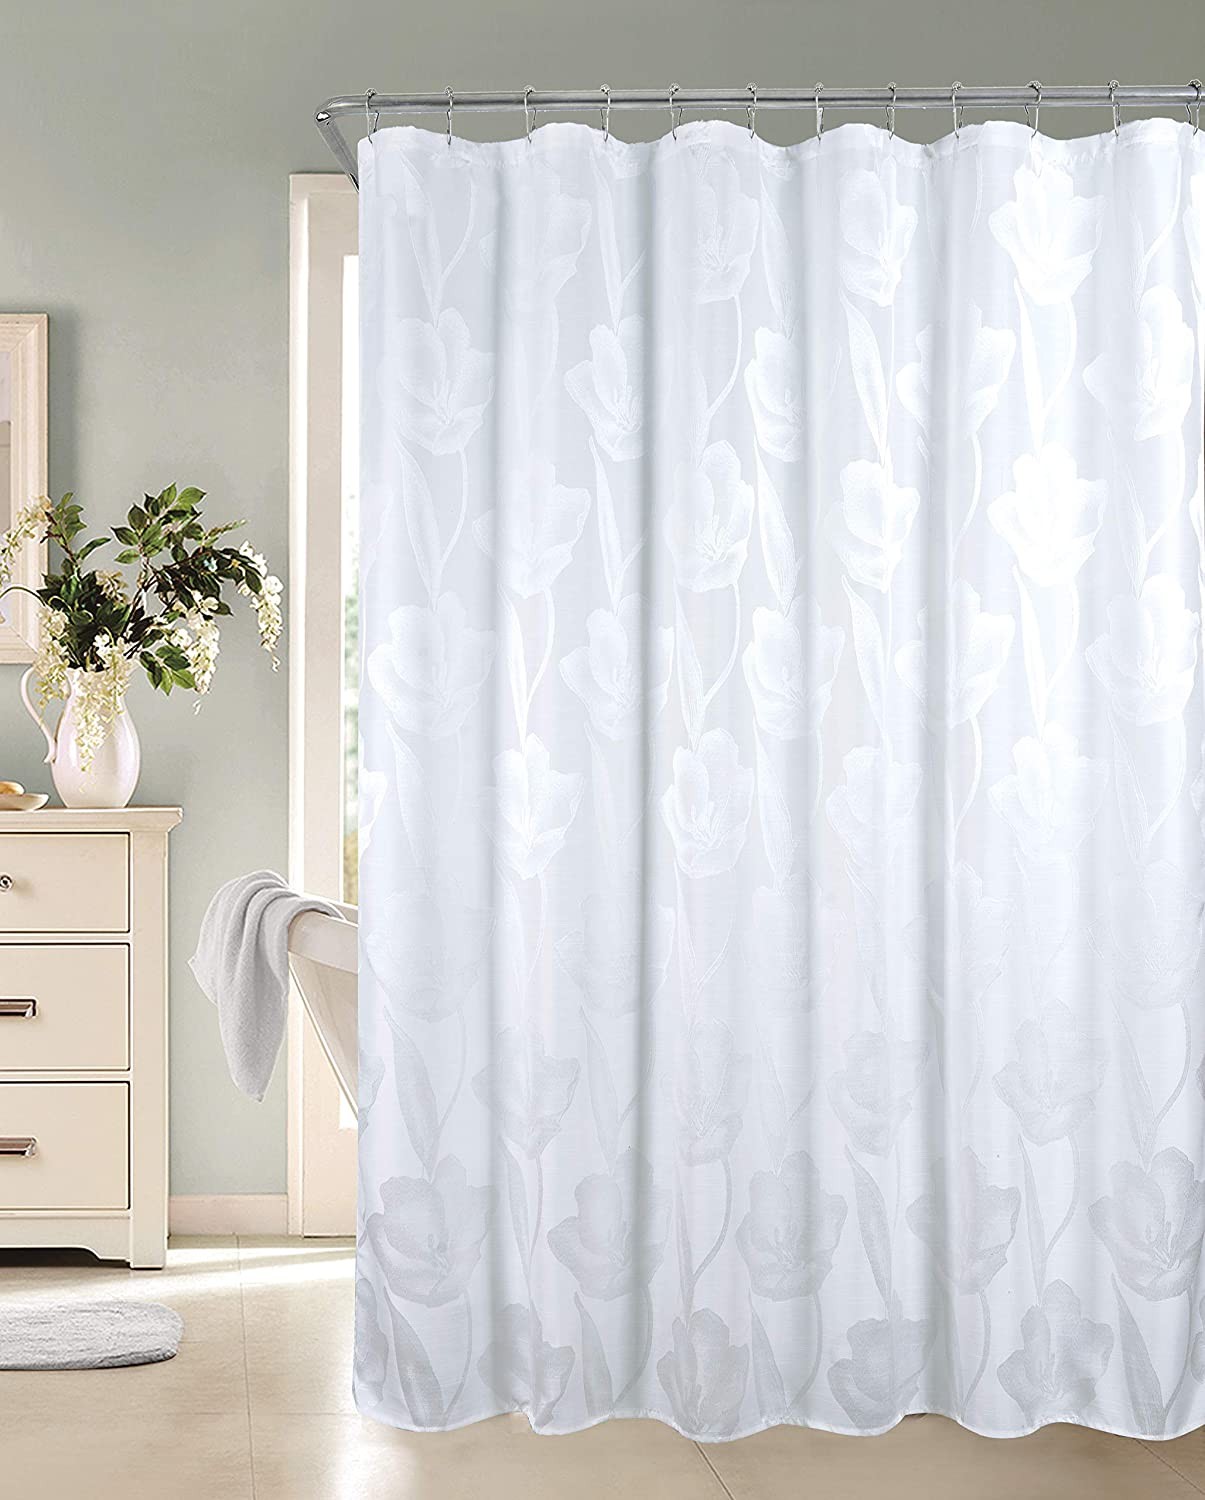 Dainty Home Lily Fabric Shower Curtain, White